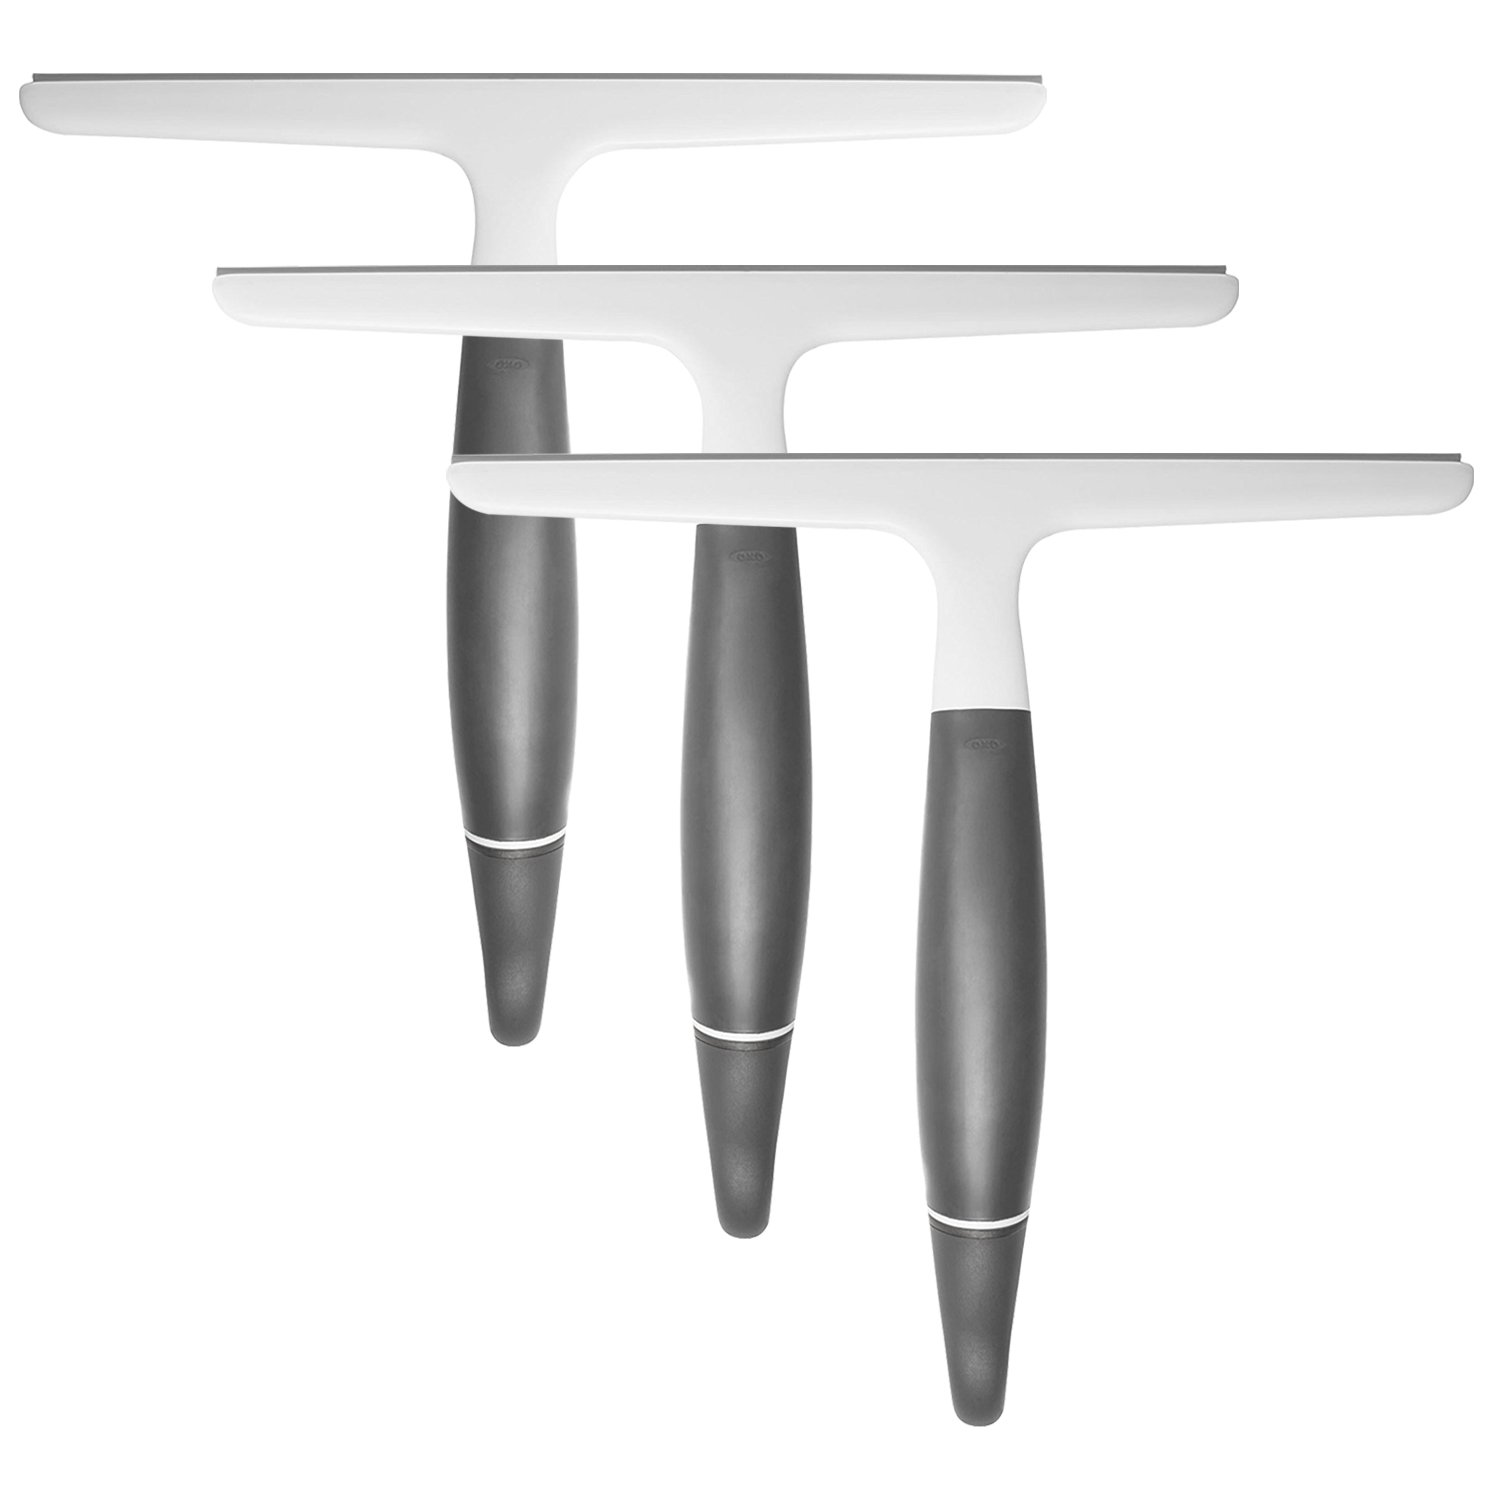 OXO Good Grips Wiper Blade Squeegee